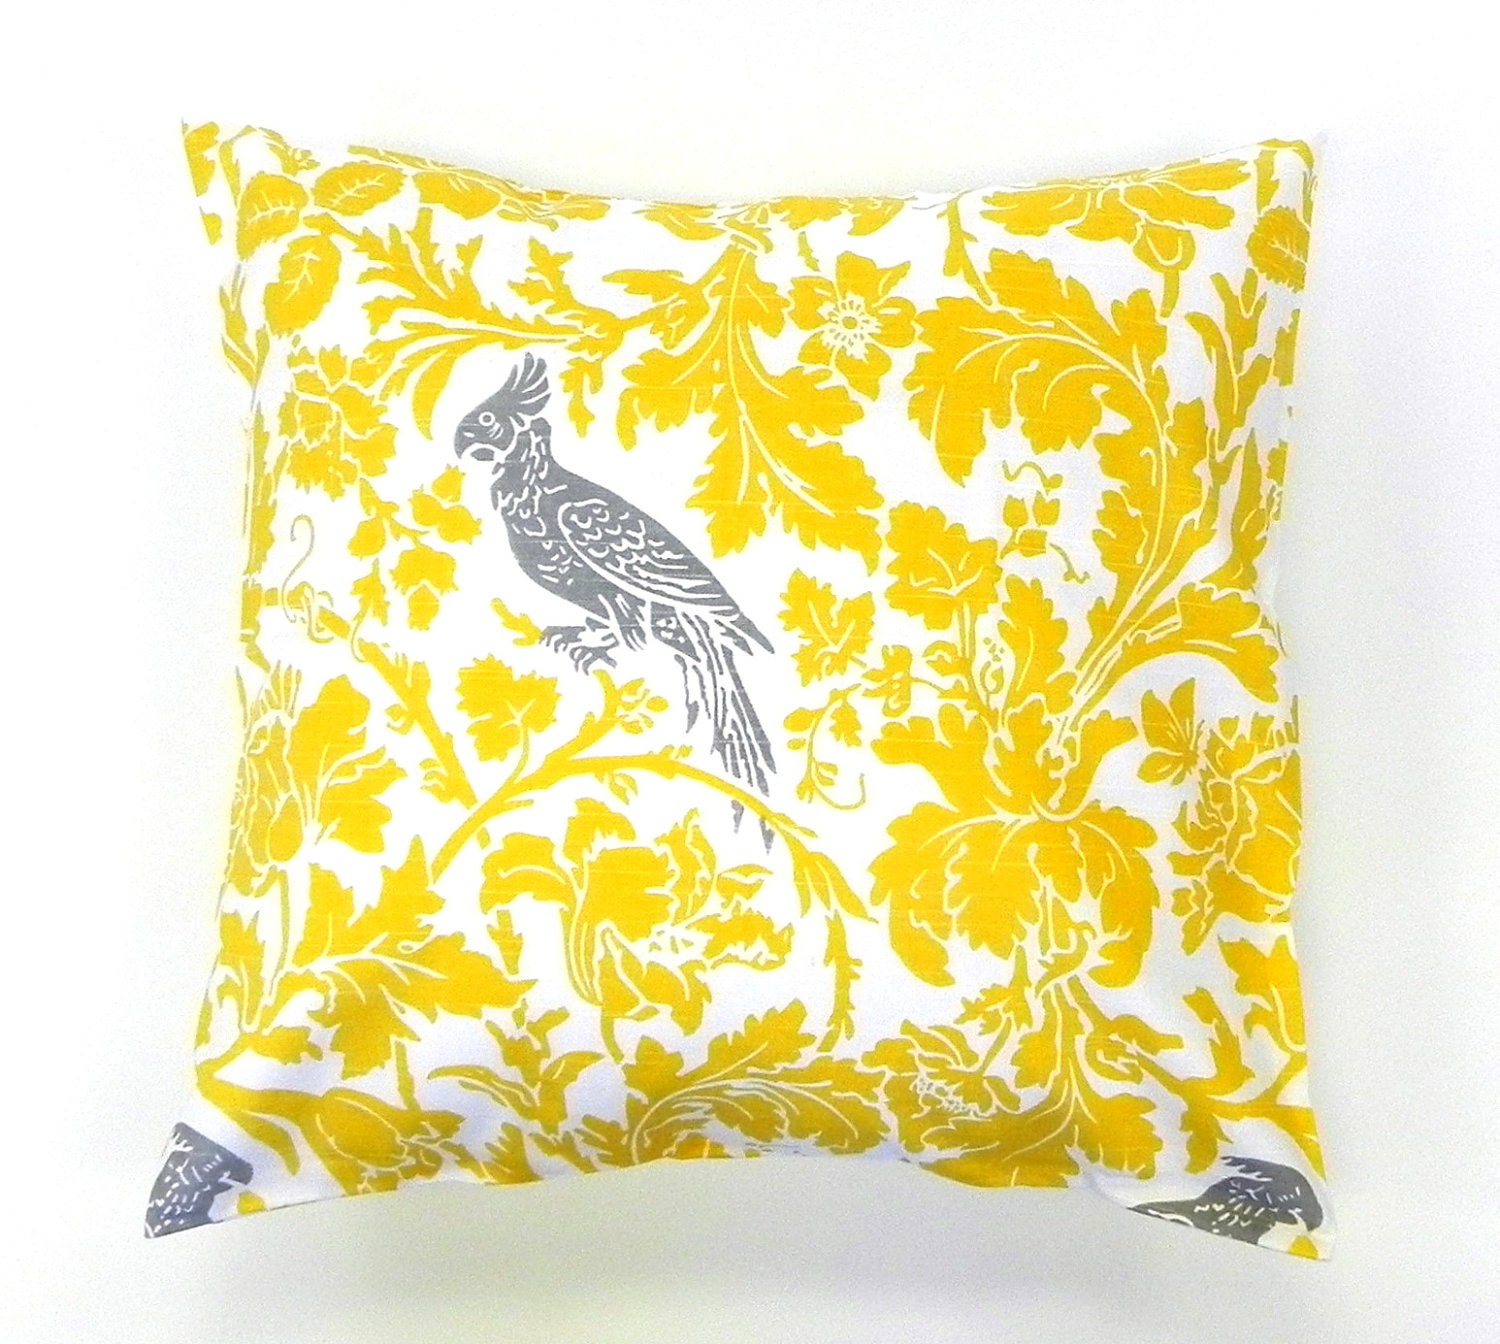 16x16 Pillow Cover. Birds and Flowers in Yellow, Grey and White - GaranceCouture